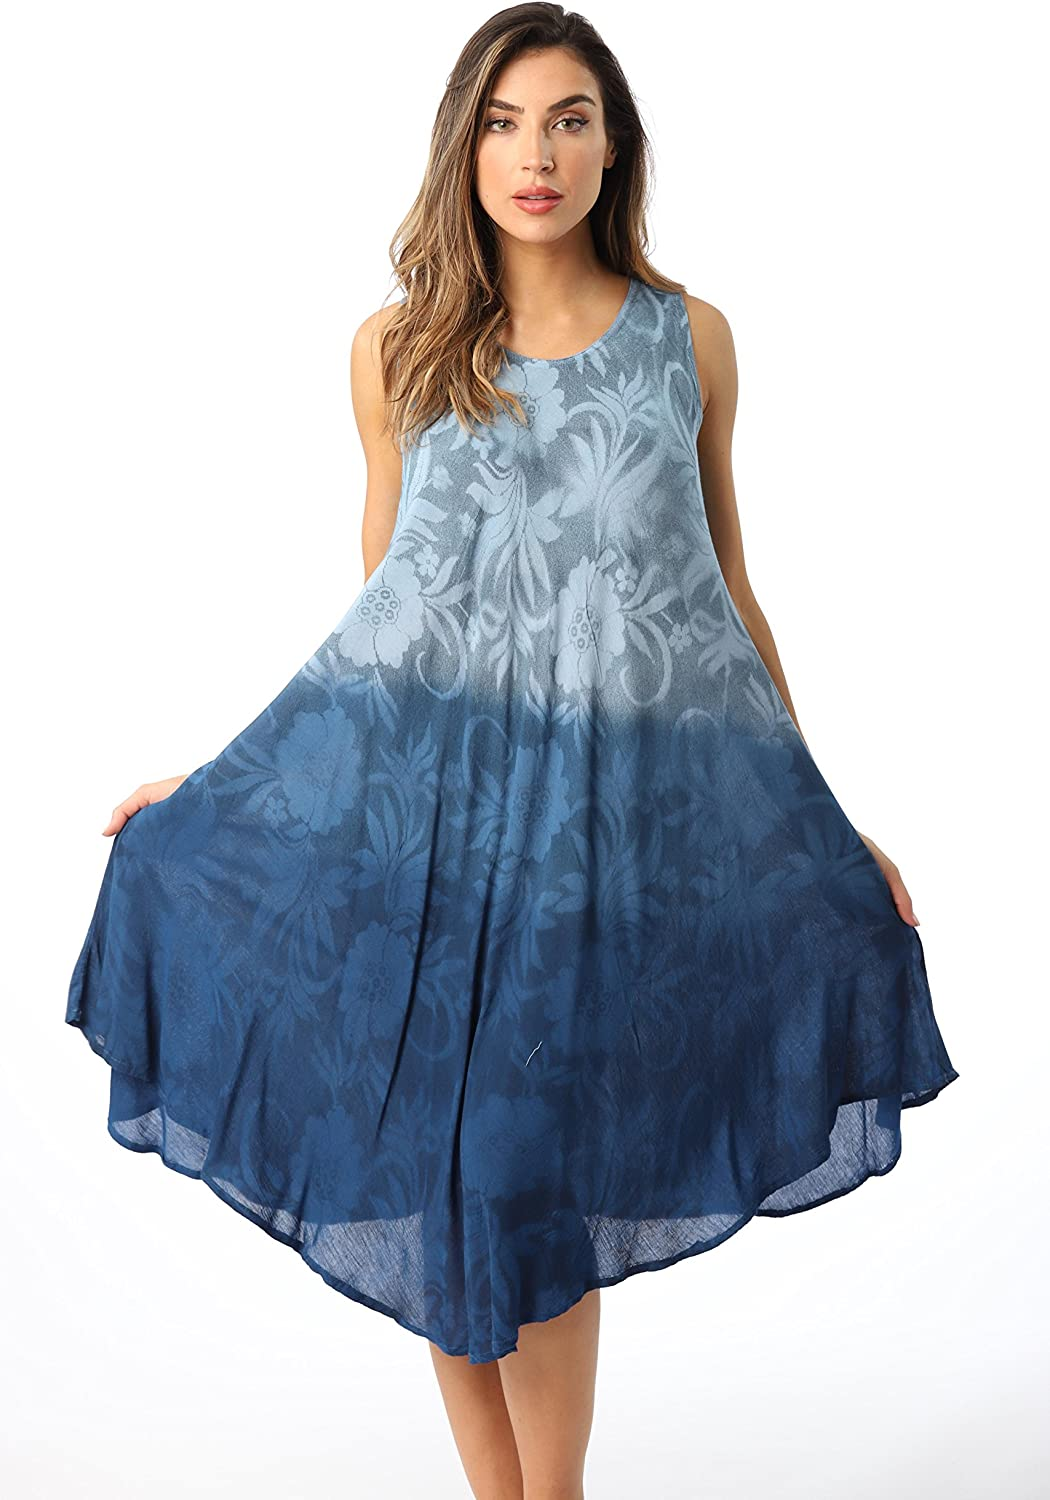 Riviera Sun Ombre Tie Dye Summer Dress with Floral Painted Desig